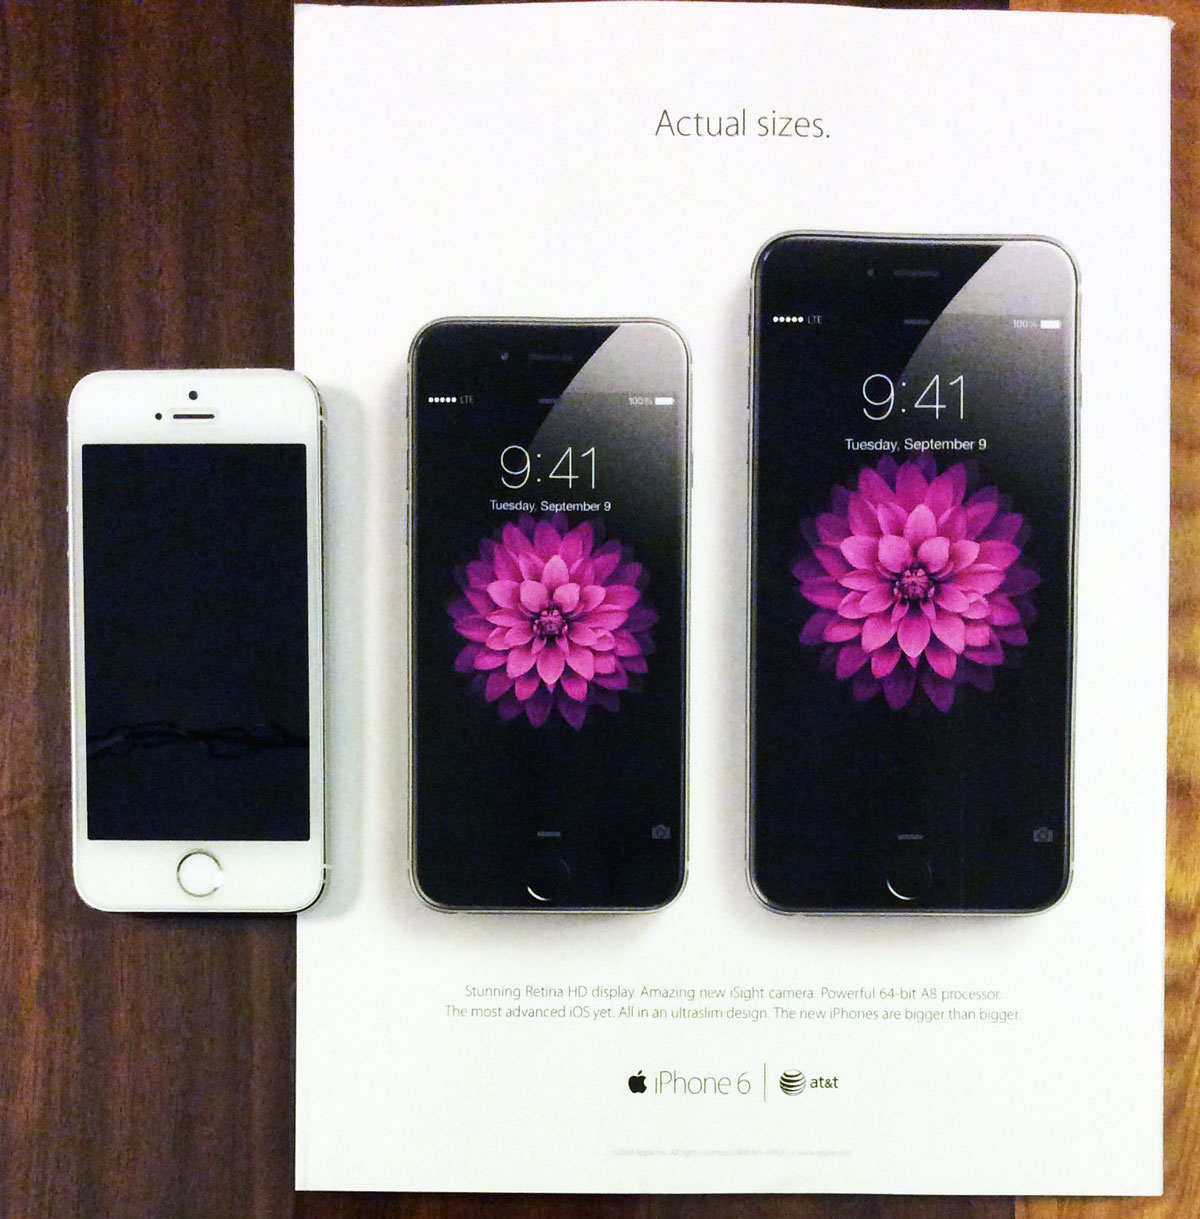 Apple Features 'Actual Size' iPhone 6/Plus in Rolling Stone Ad